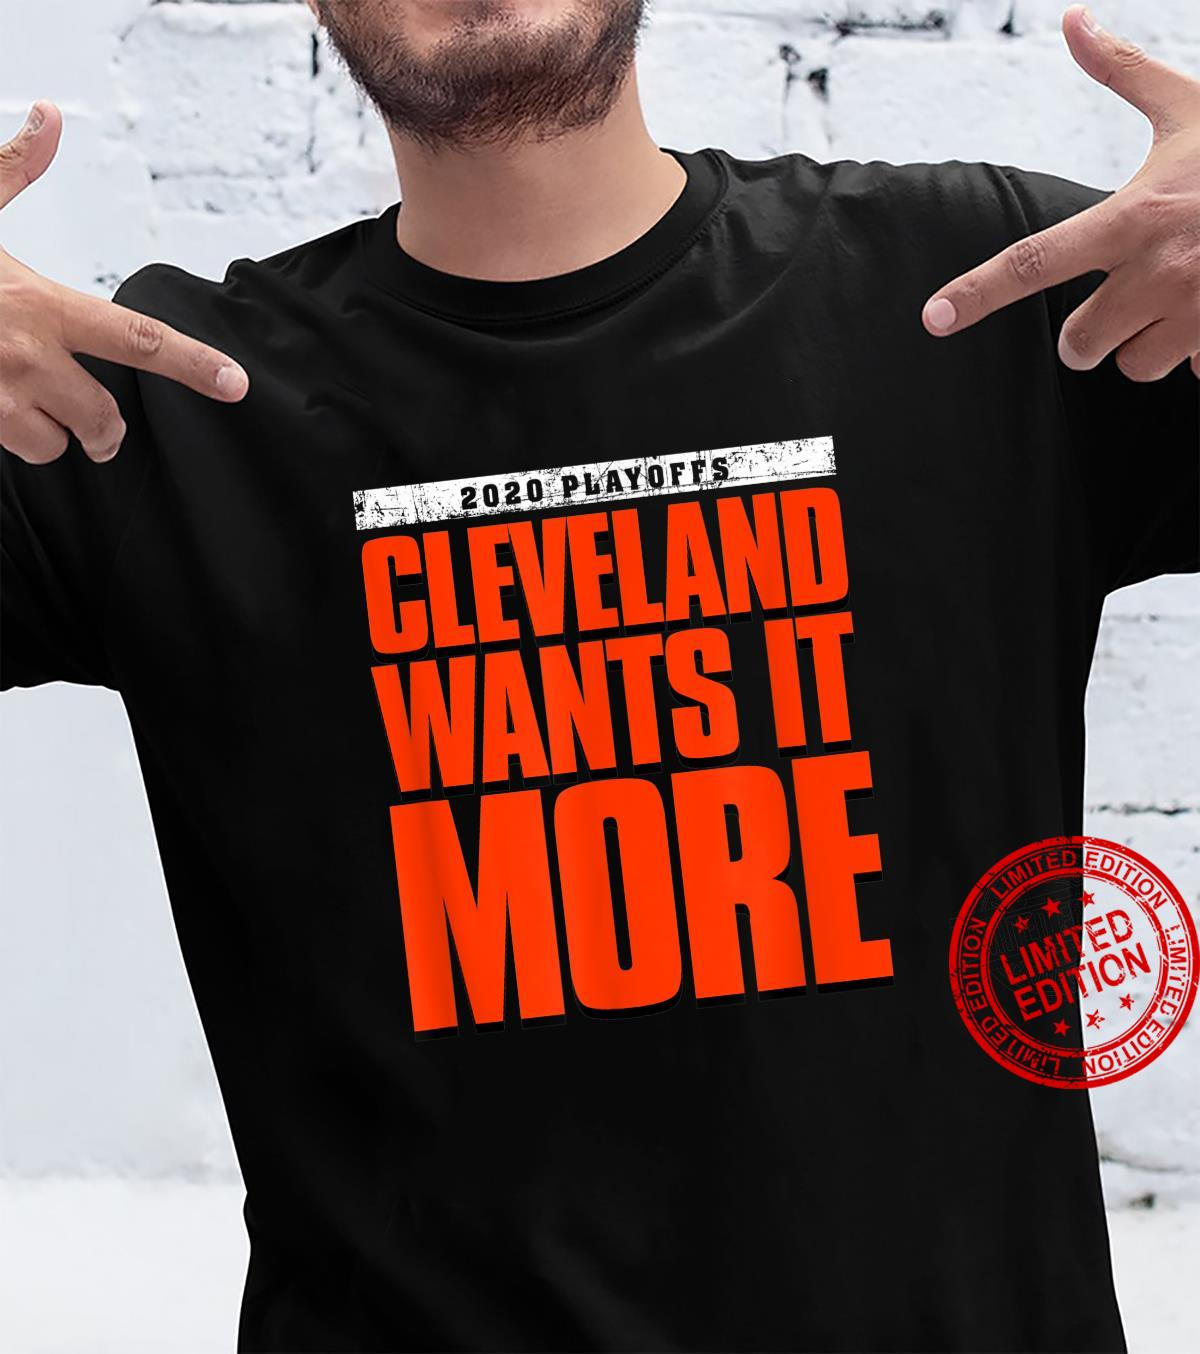 2020 playoffs Cleveland Wants it More football Shirt